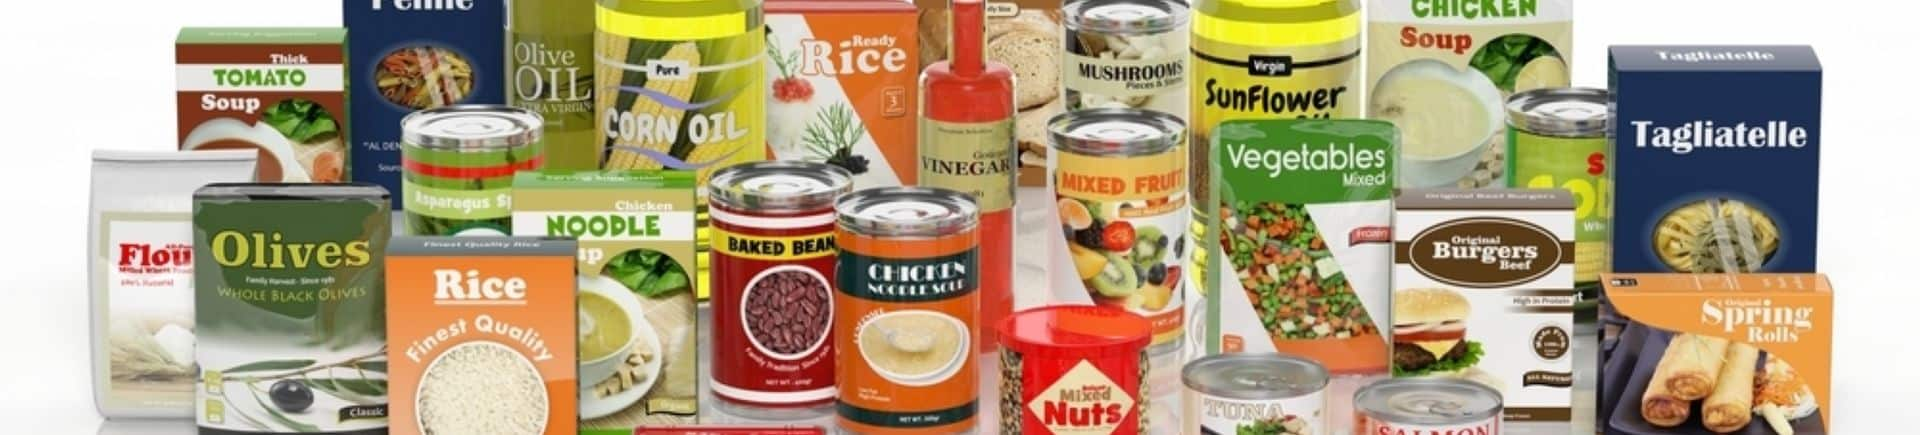 Food Packaging structures